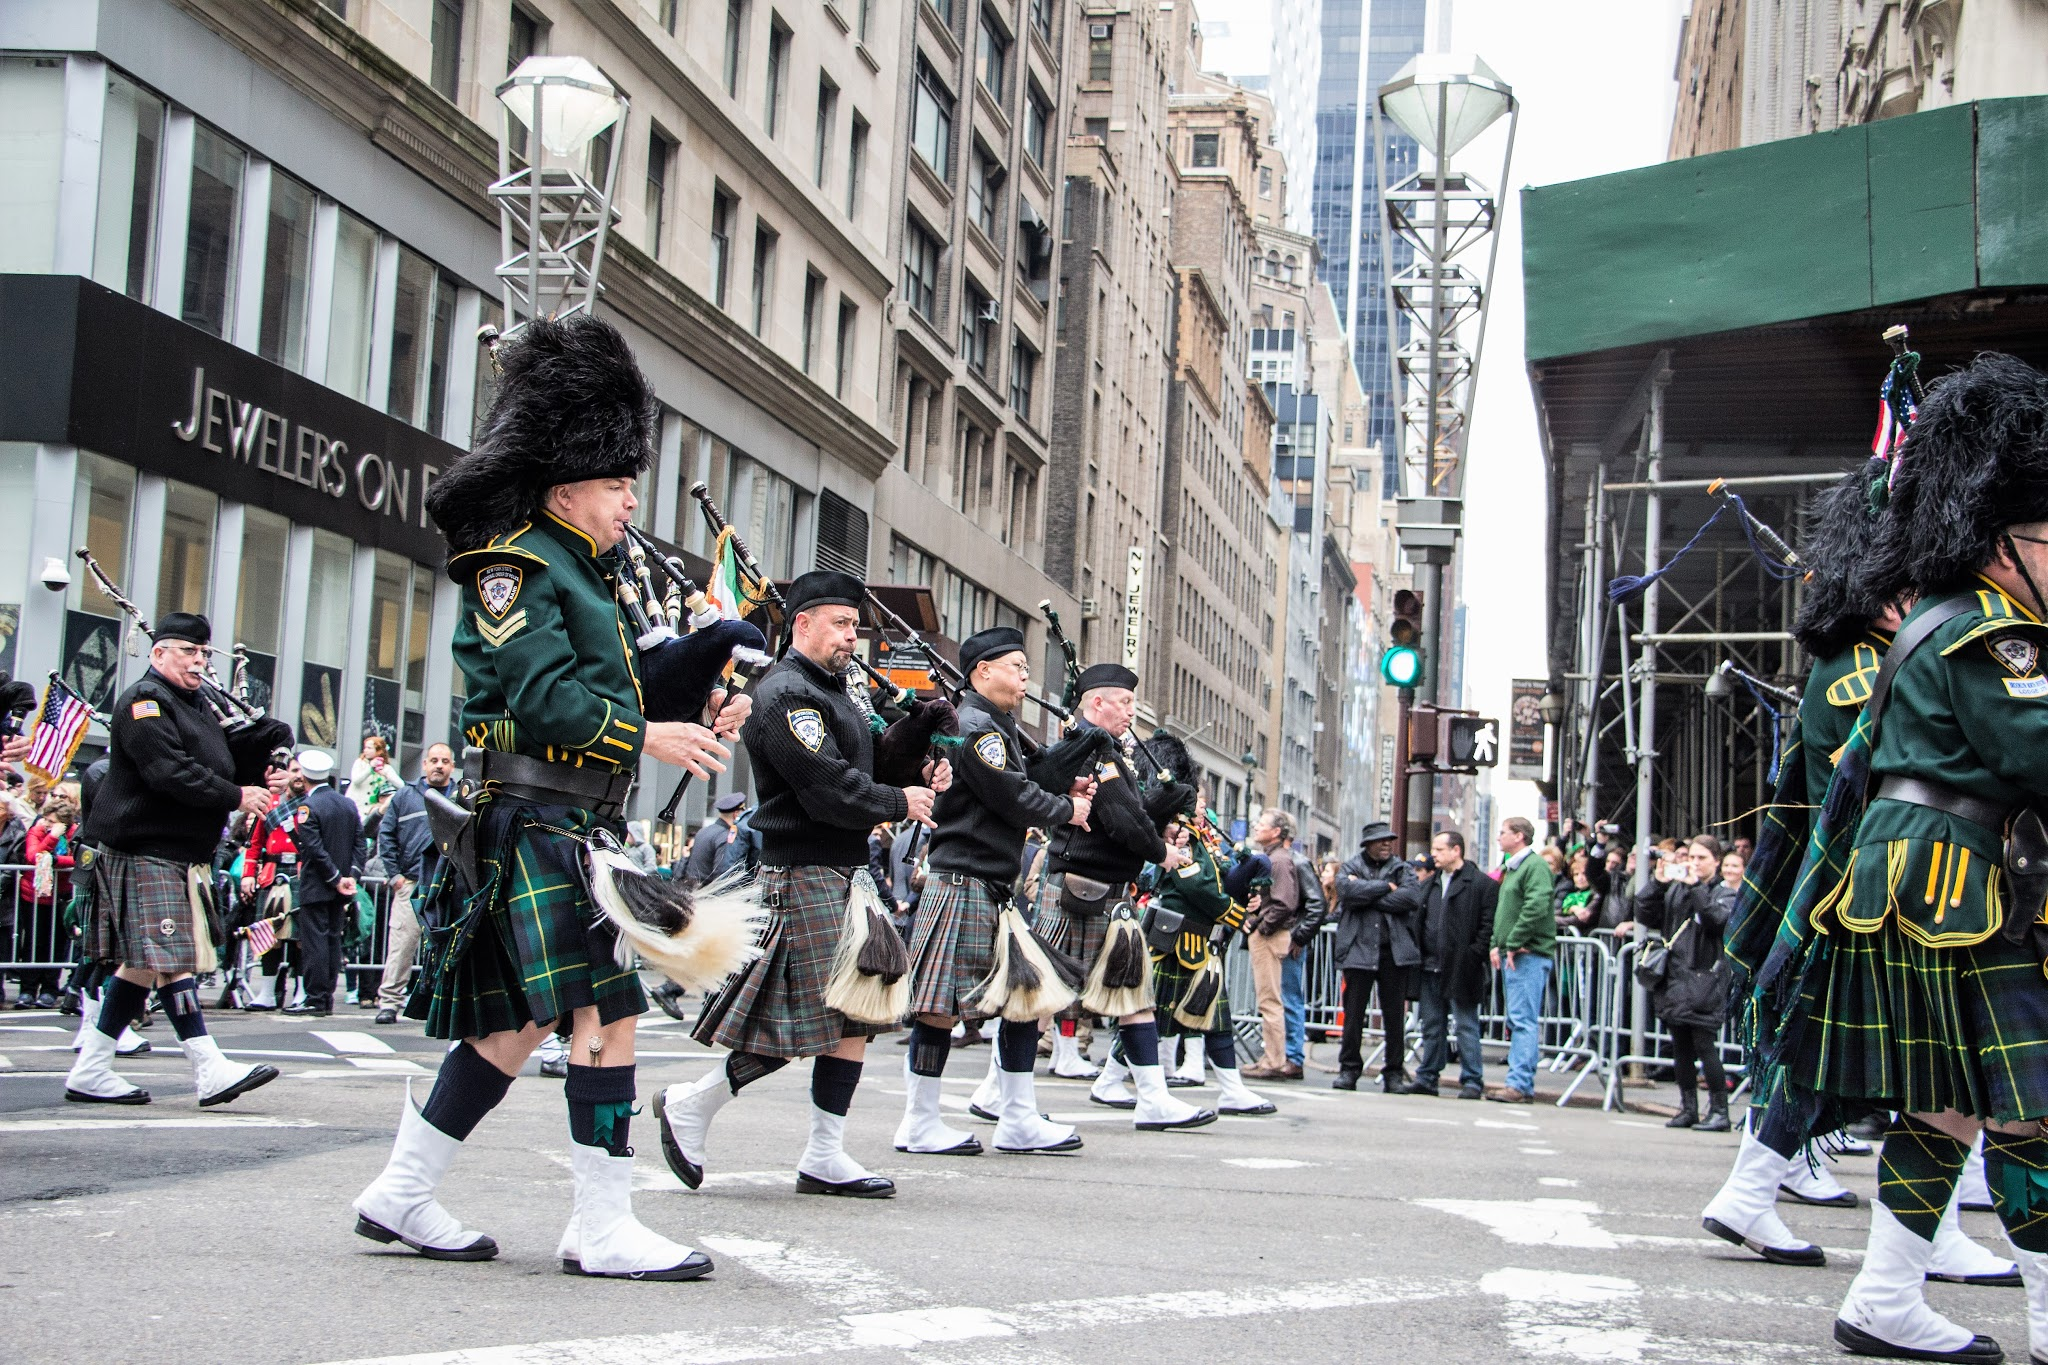 St. Patrick's Day New York City 2015